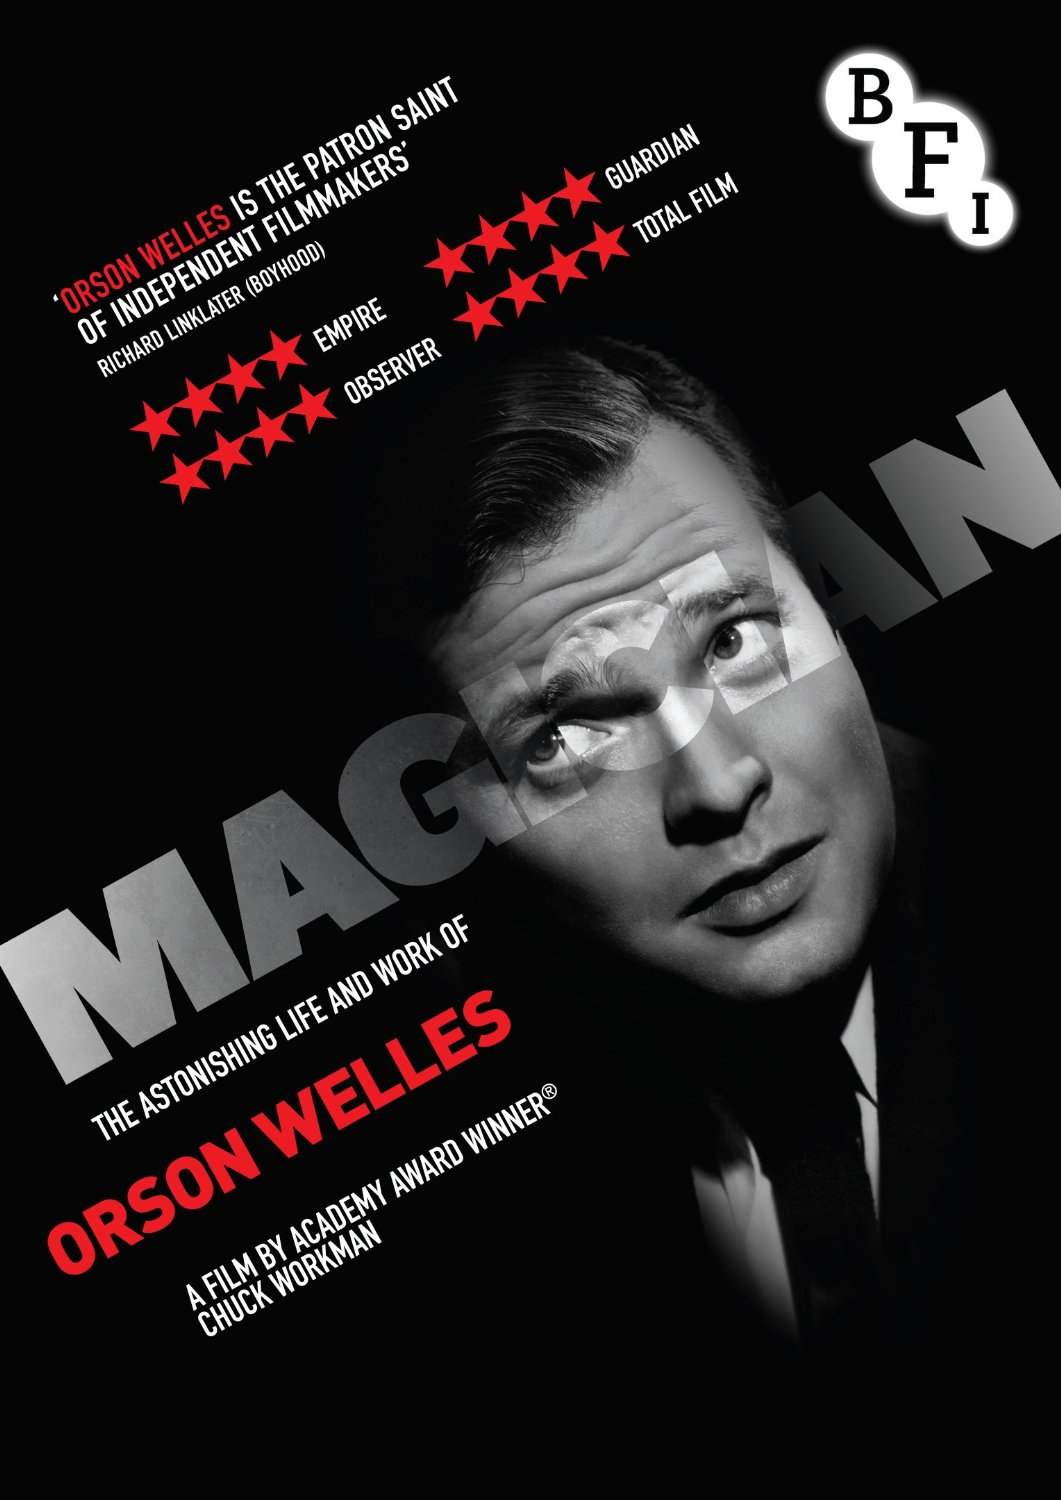 Buy Magician: The Astonishing Life and Work of Orson Welles